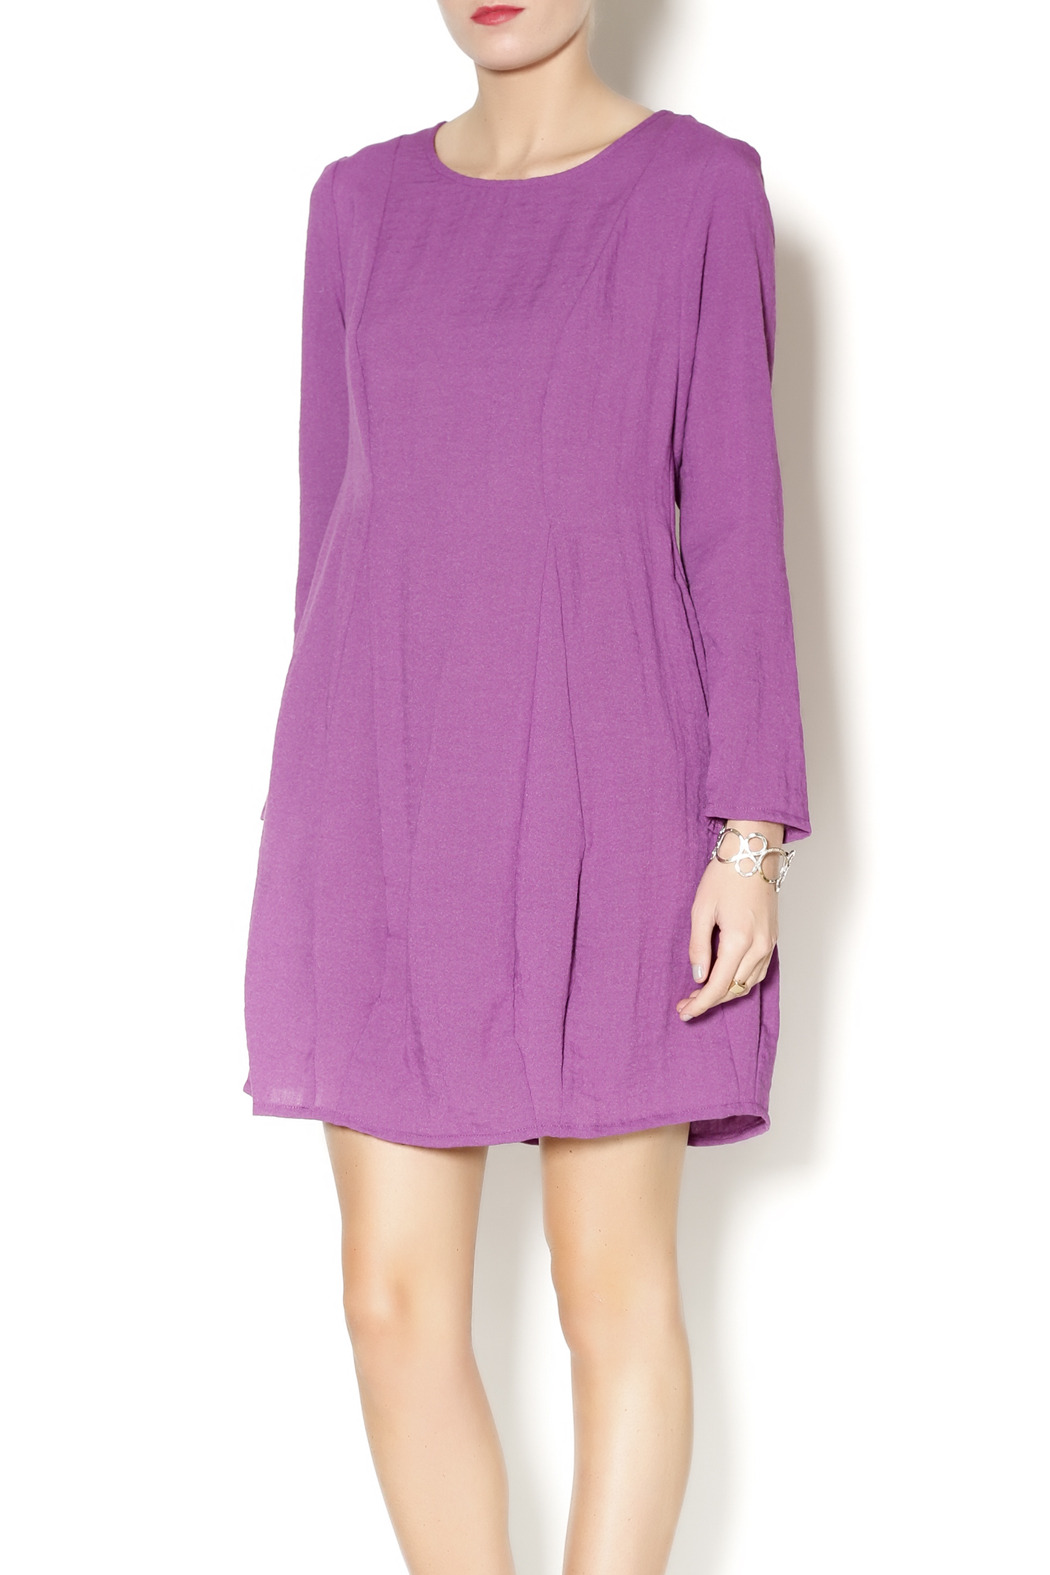 Niche Aria Eclipse Tunic - Front Cropped Image